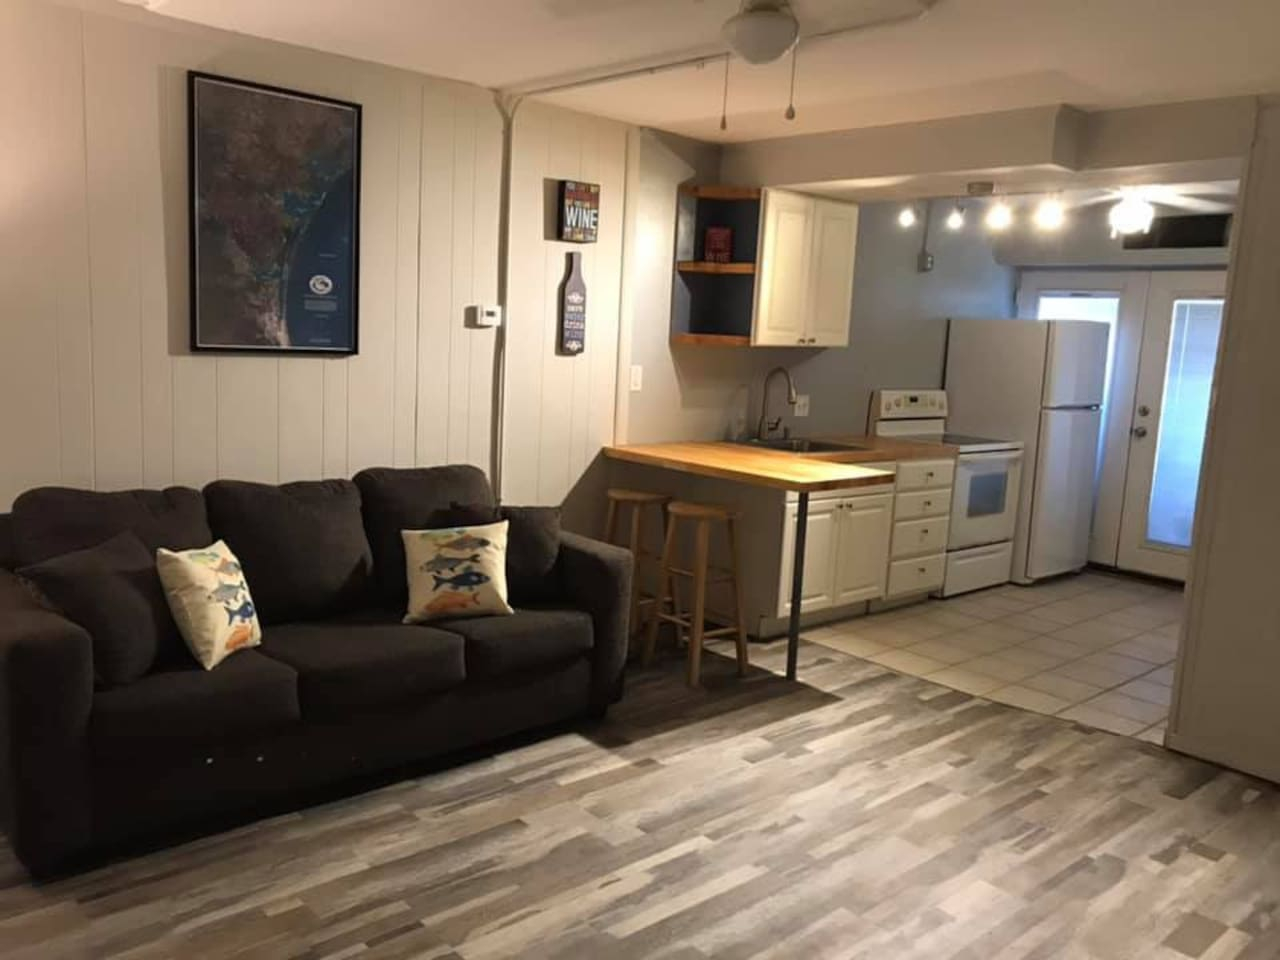 Open floor plan with a sleeper sofa and a queen size bed